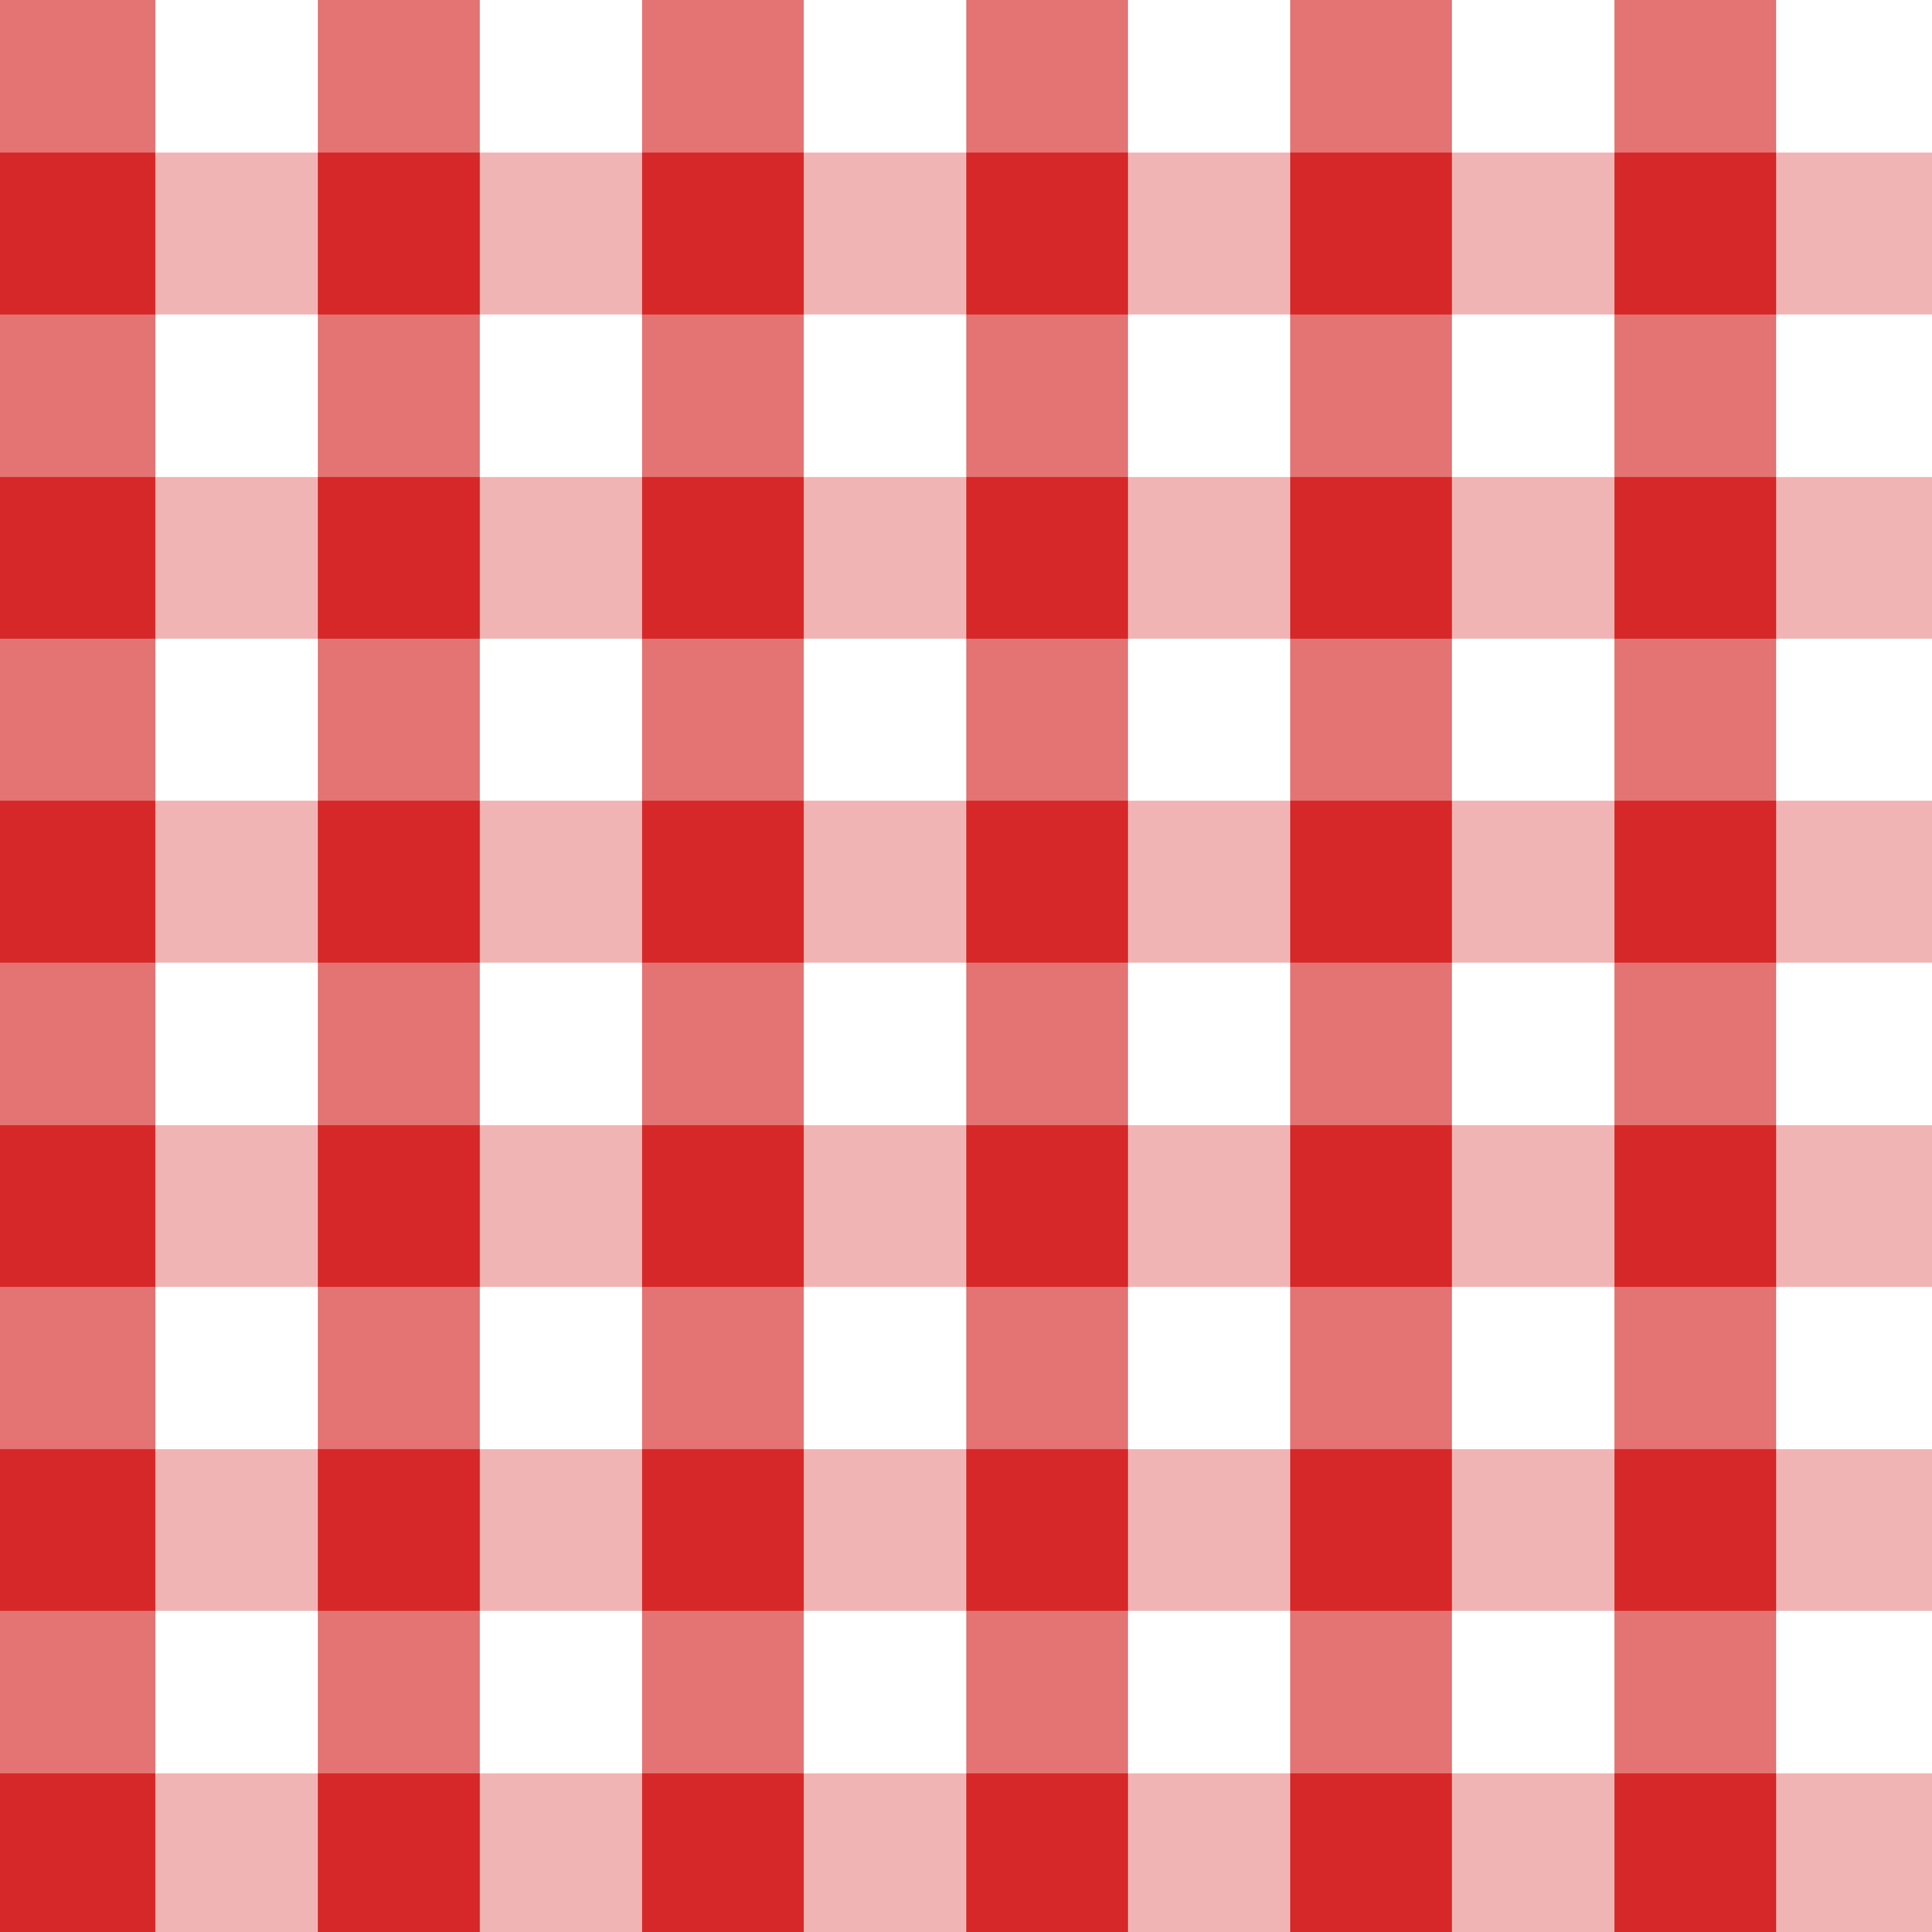 Pattern clipart burst Awesome Picnic Albendazole Tablecloth Gallery